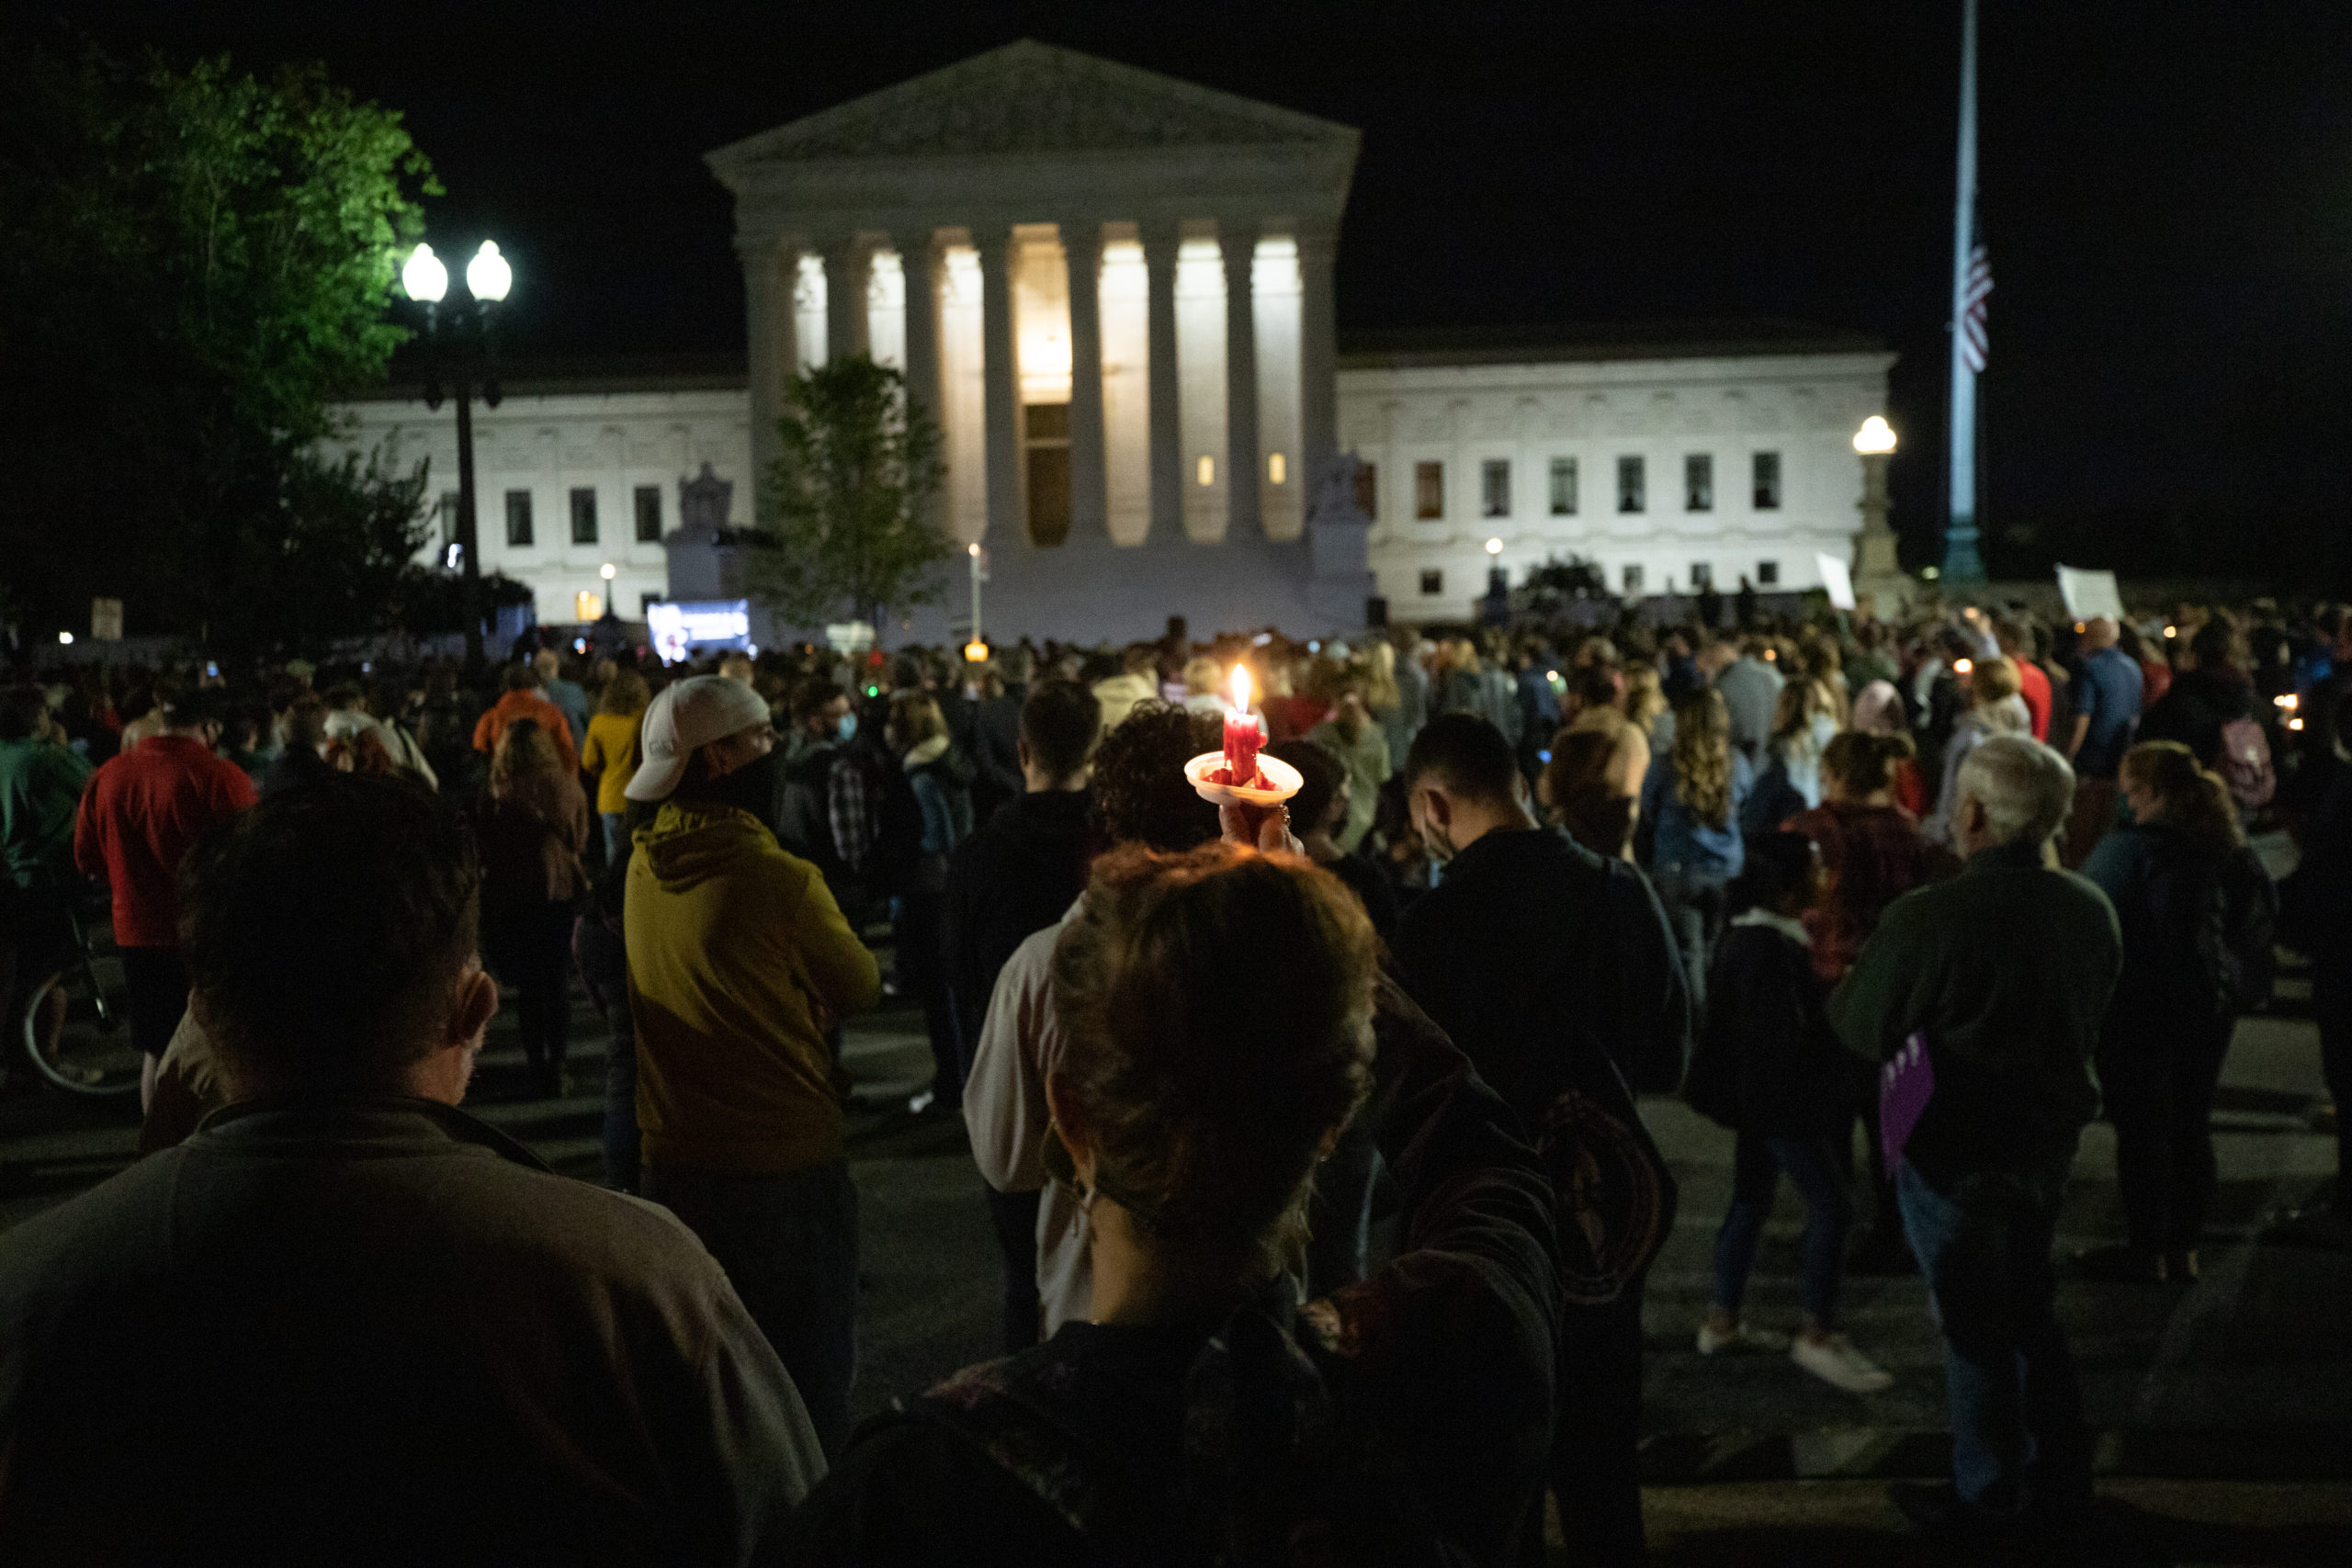 A woman holds a candle up towards the Supreme Court at a memorial honoring the late Justice Ruth Bader Ginsburg on Sept. 19, 2020. (Photo: Kaylee Greenlee / The DCNF)